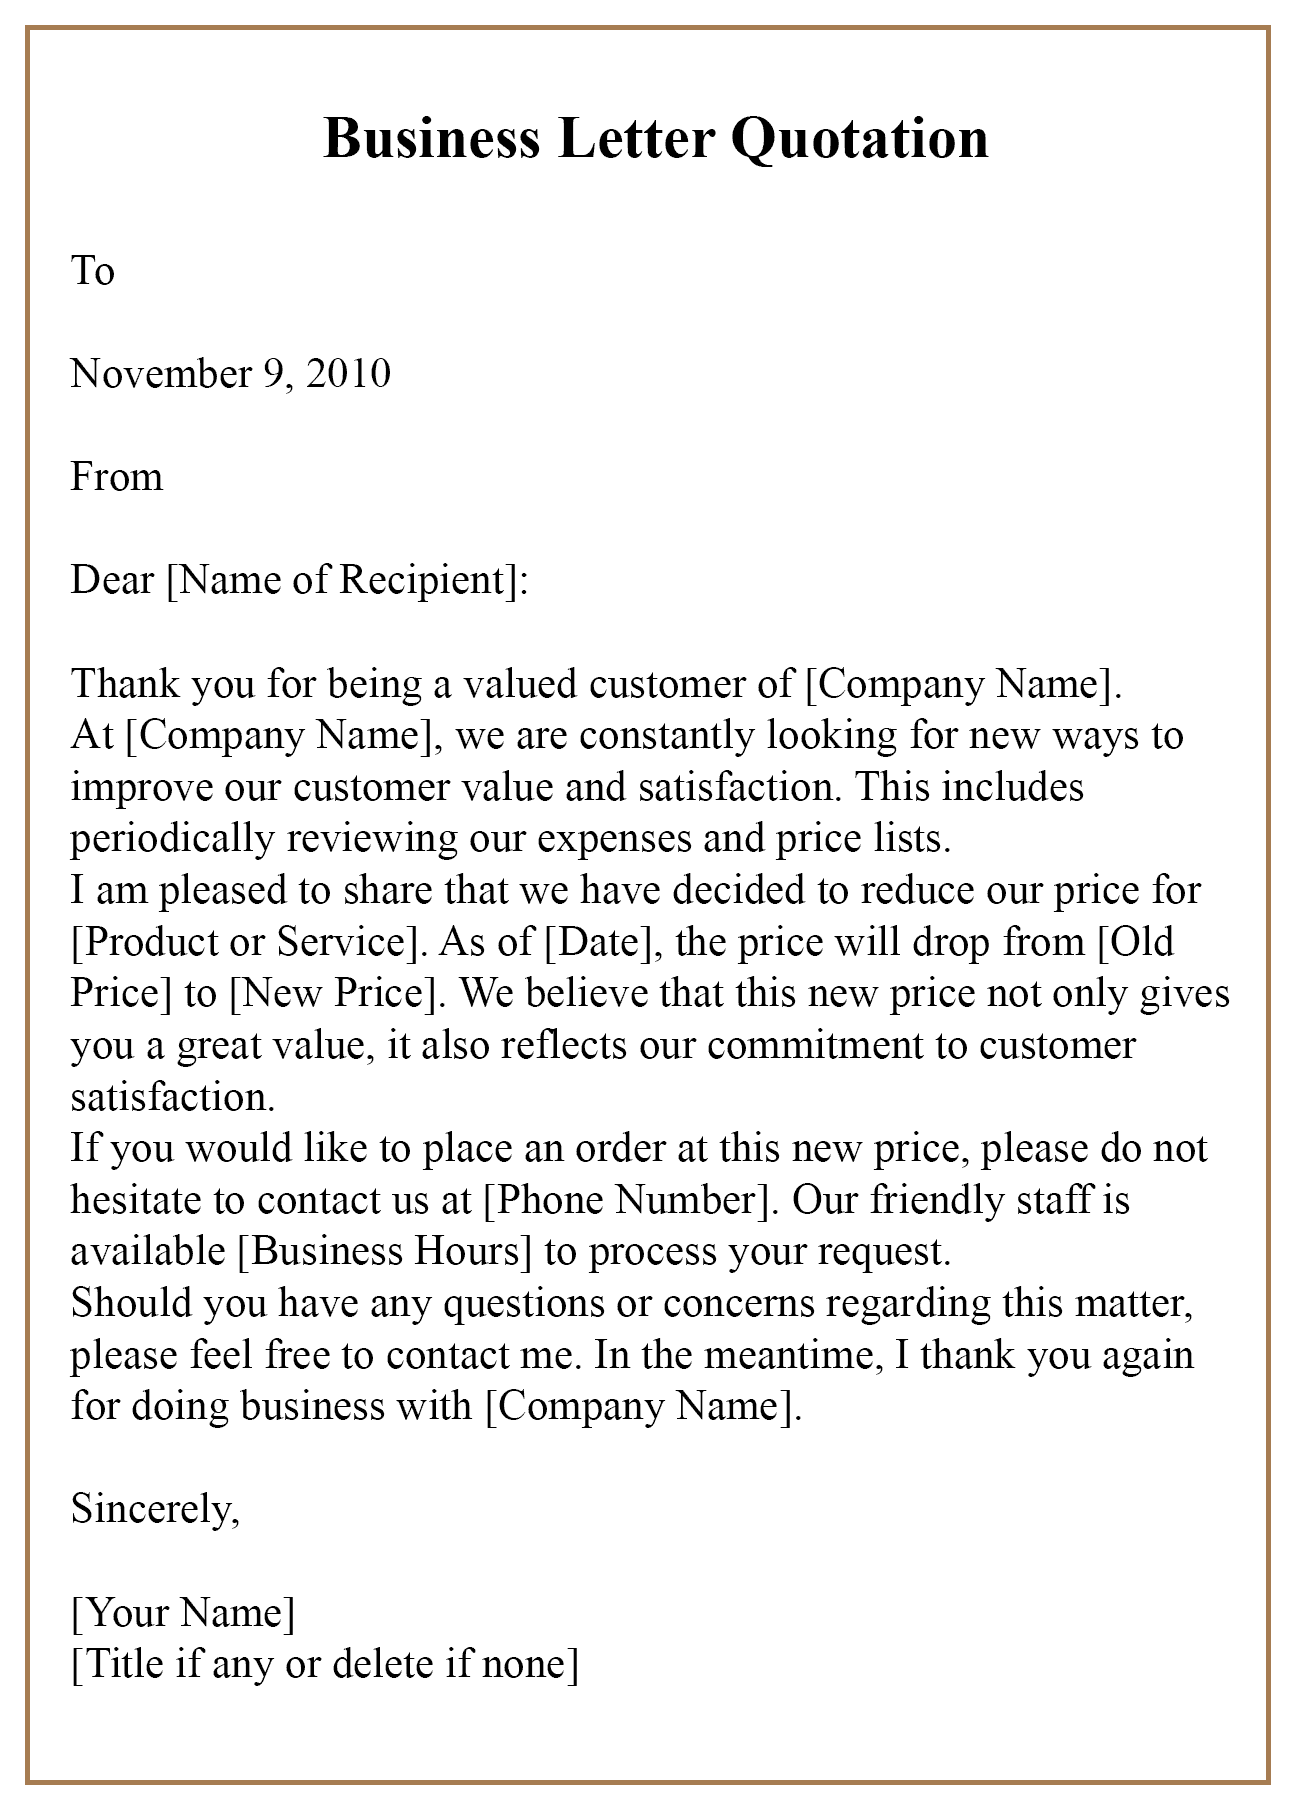 Letter For Business Quotation